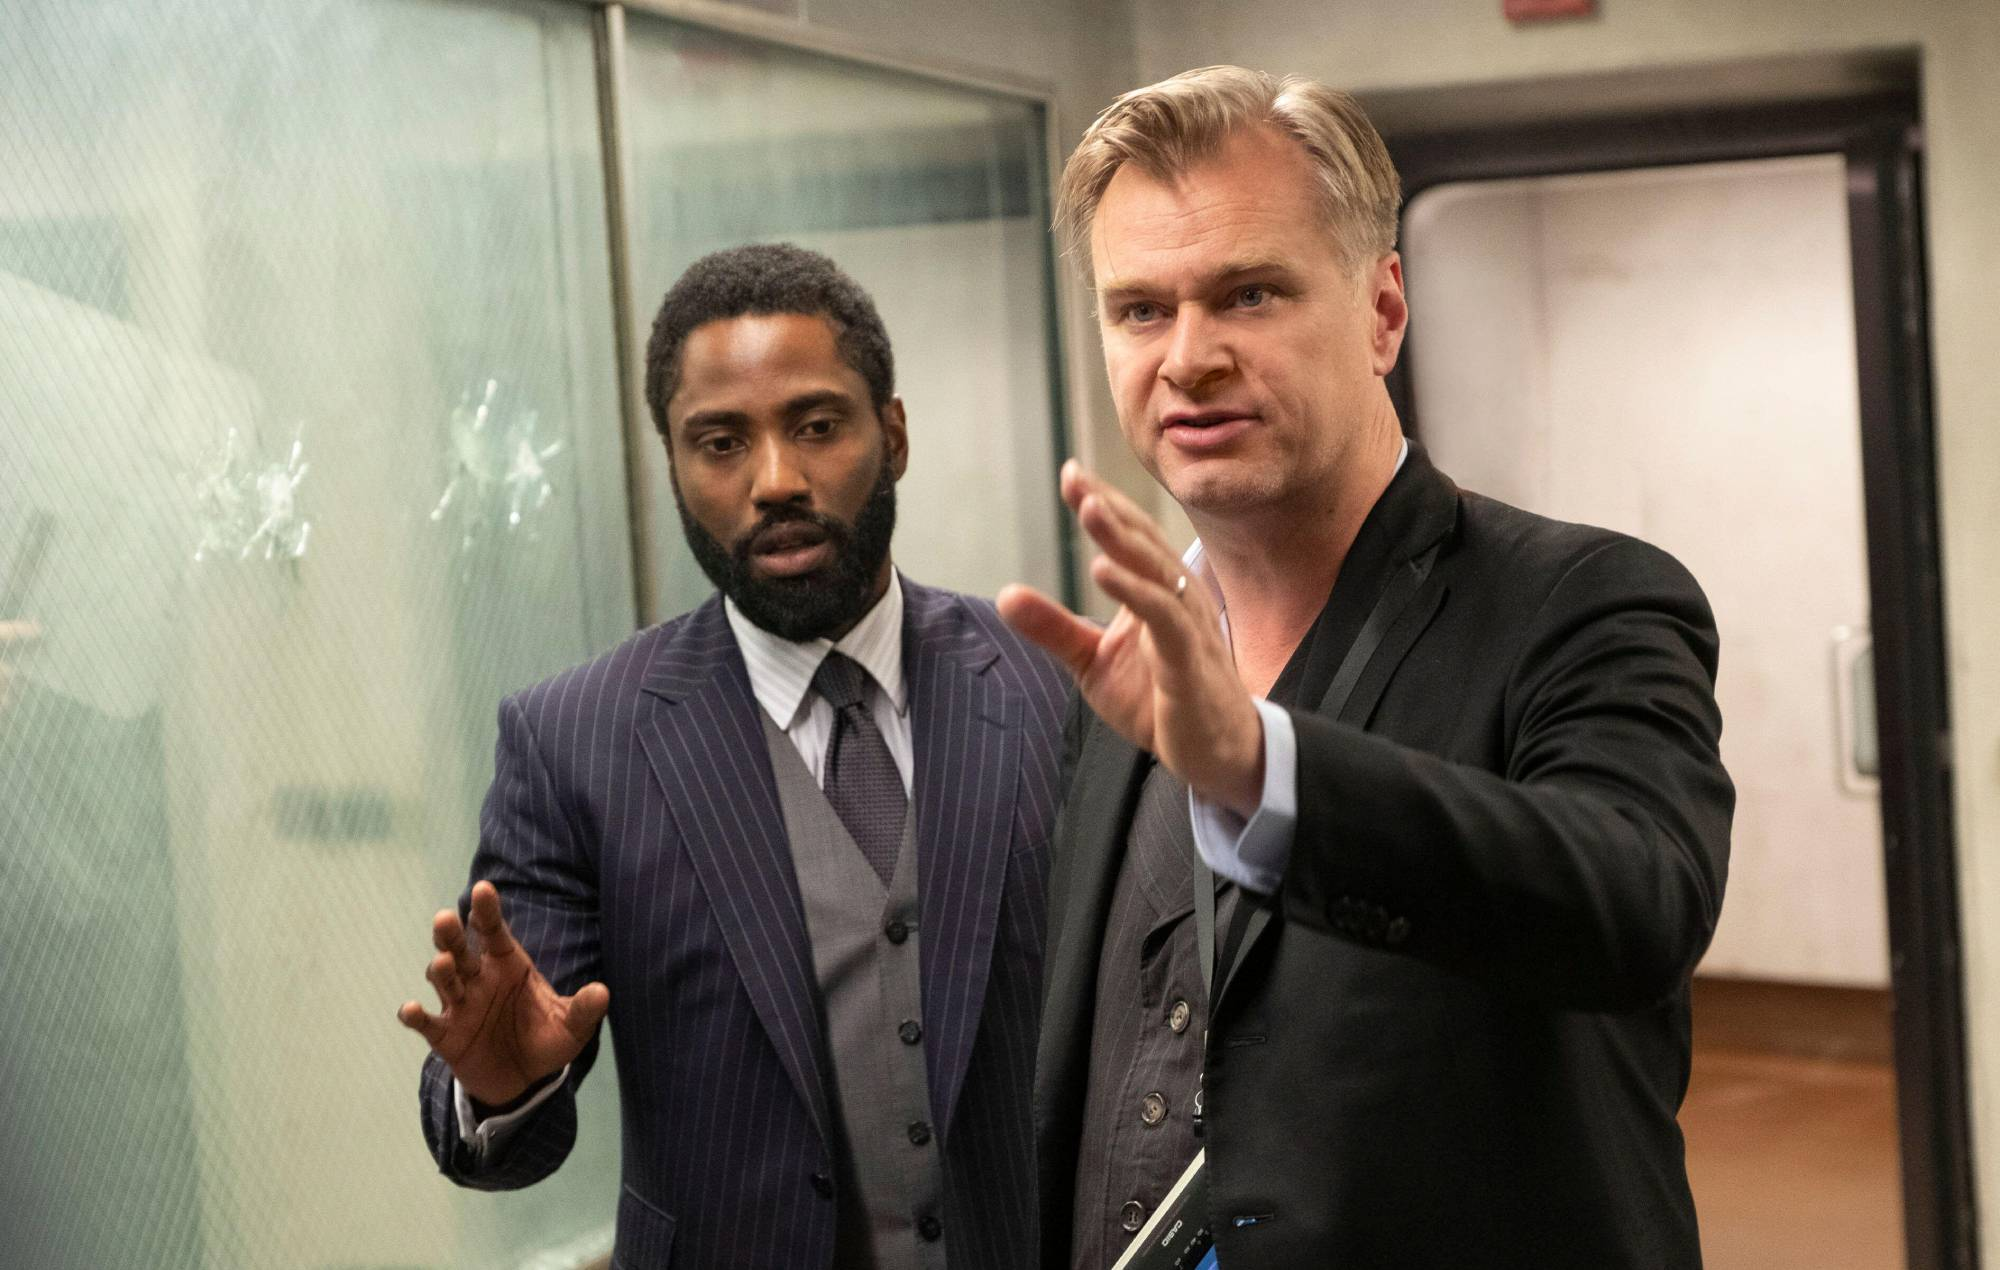 Christopher Nolan unlikely to work with Warner Bros. on next project